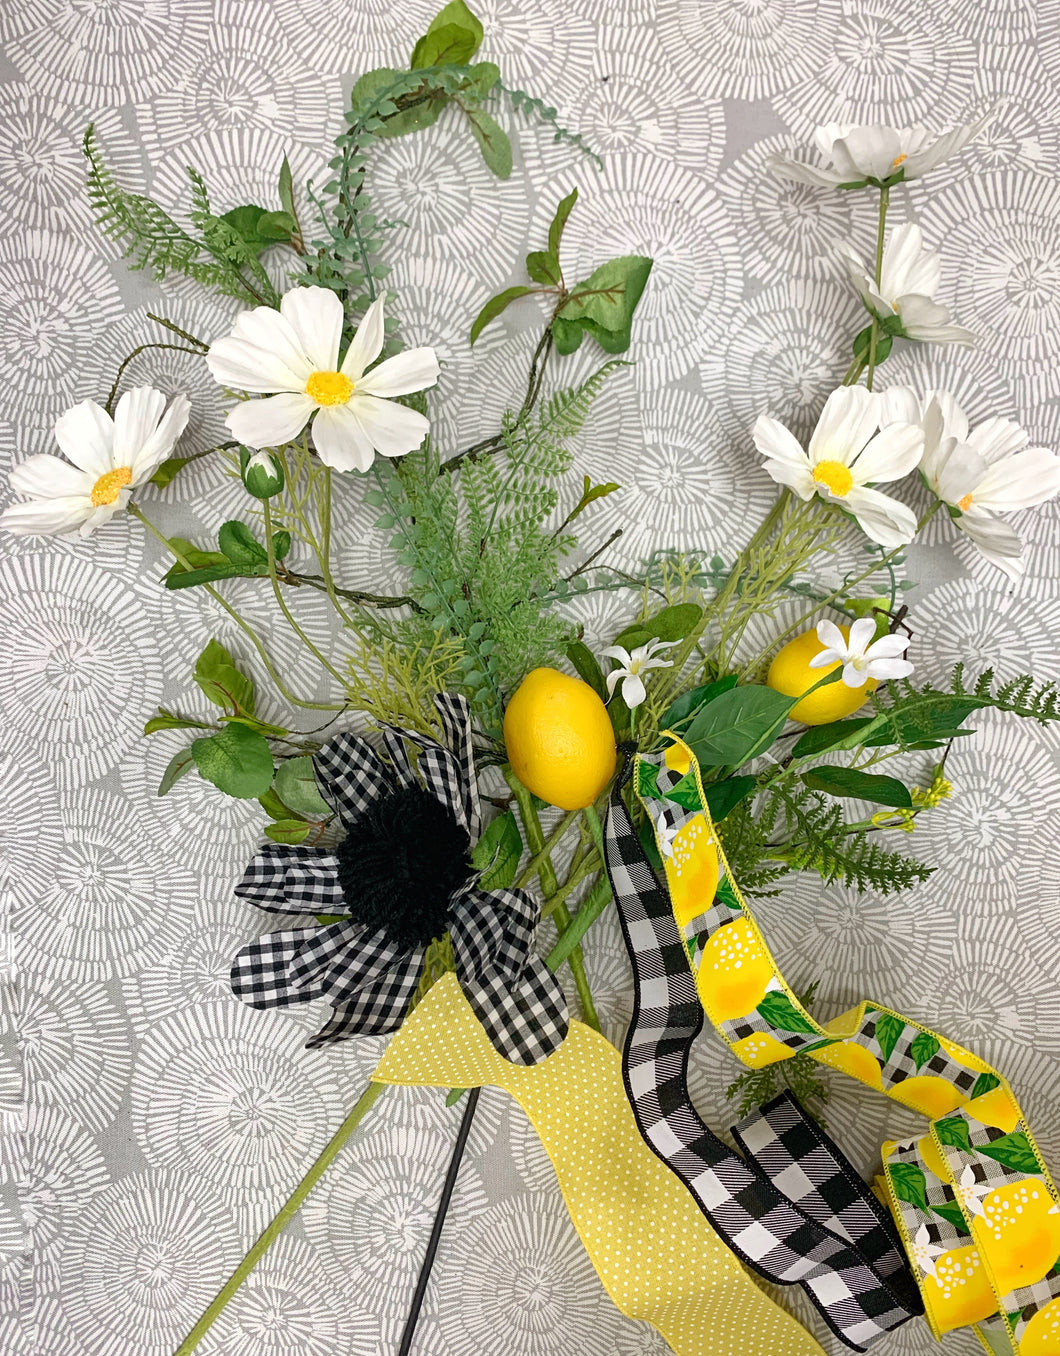 Gingham Lemon Wreath Kit